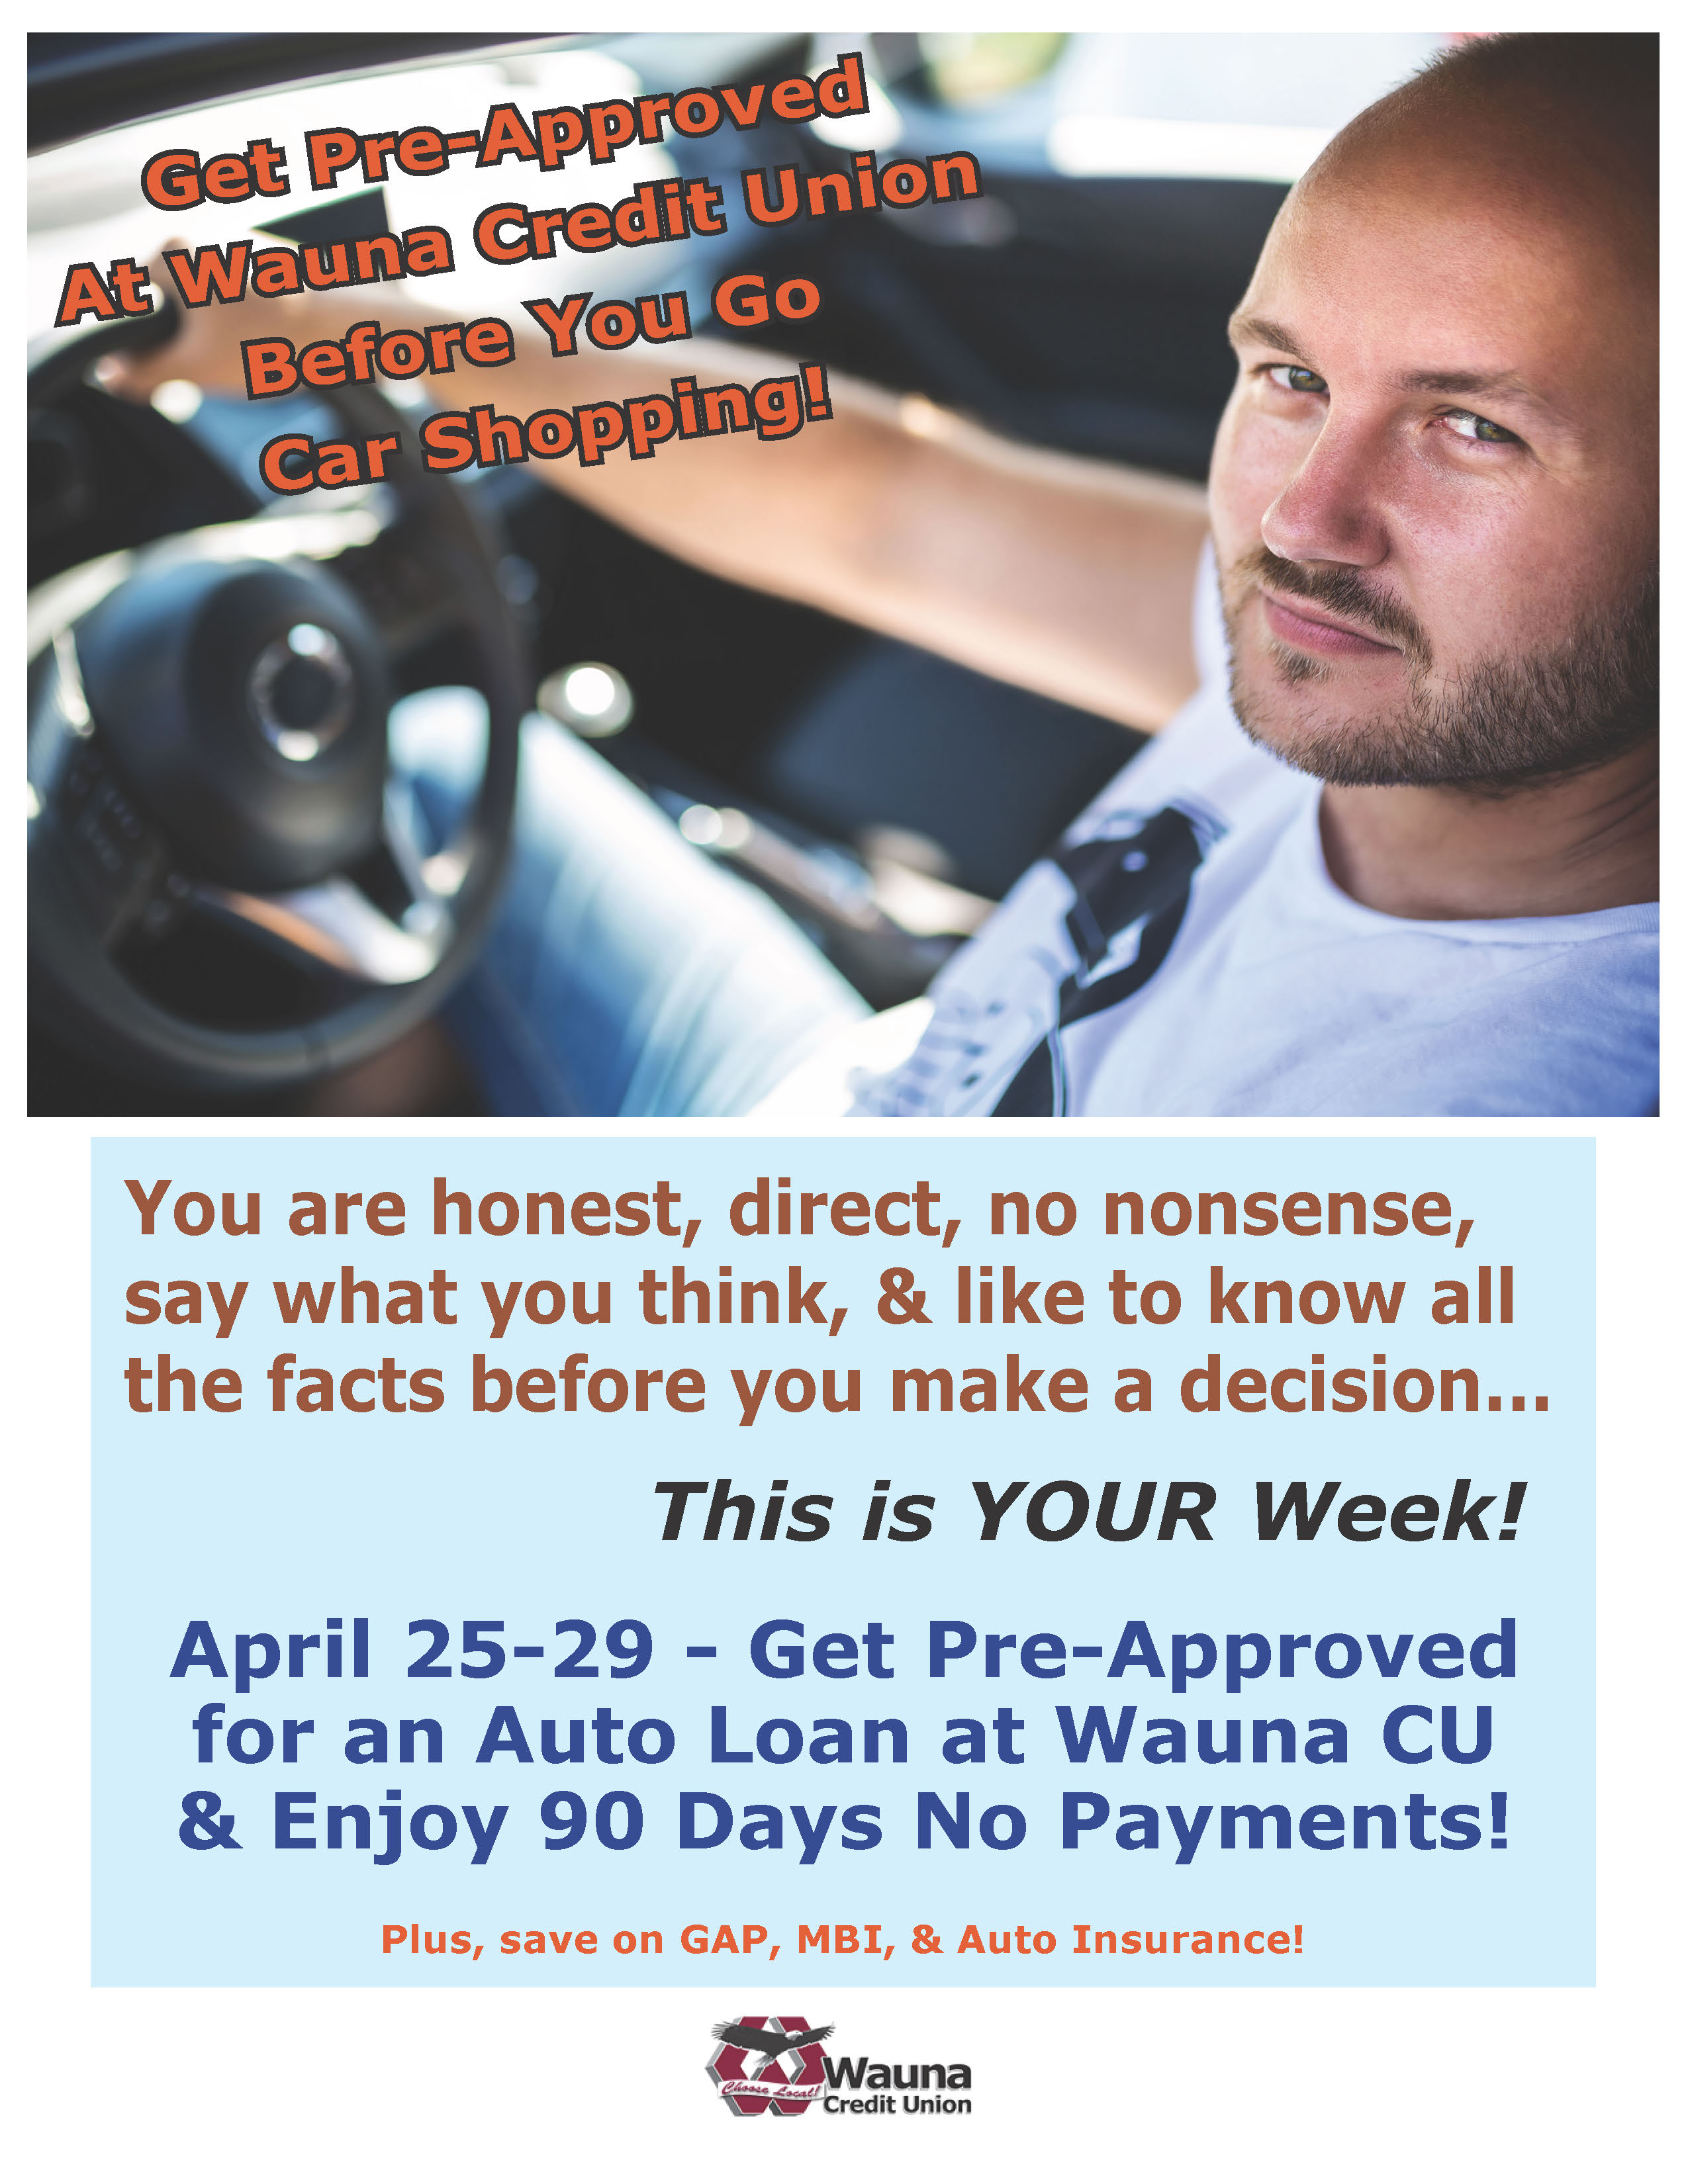 Need A New Car? This is Your Week! - The Wonderful World ...